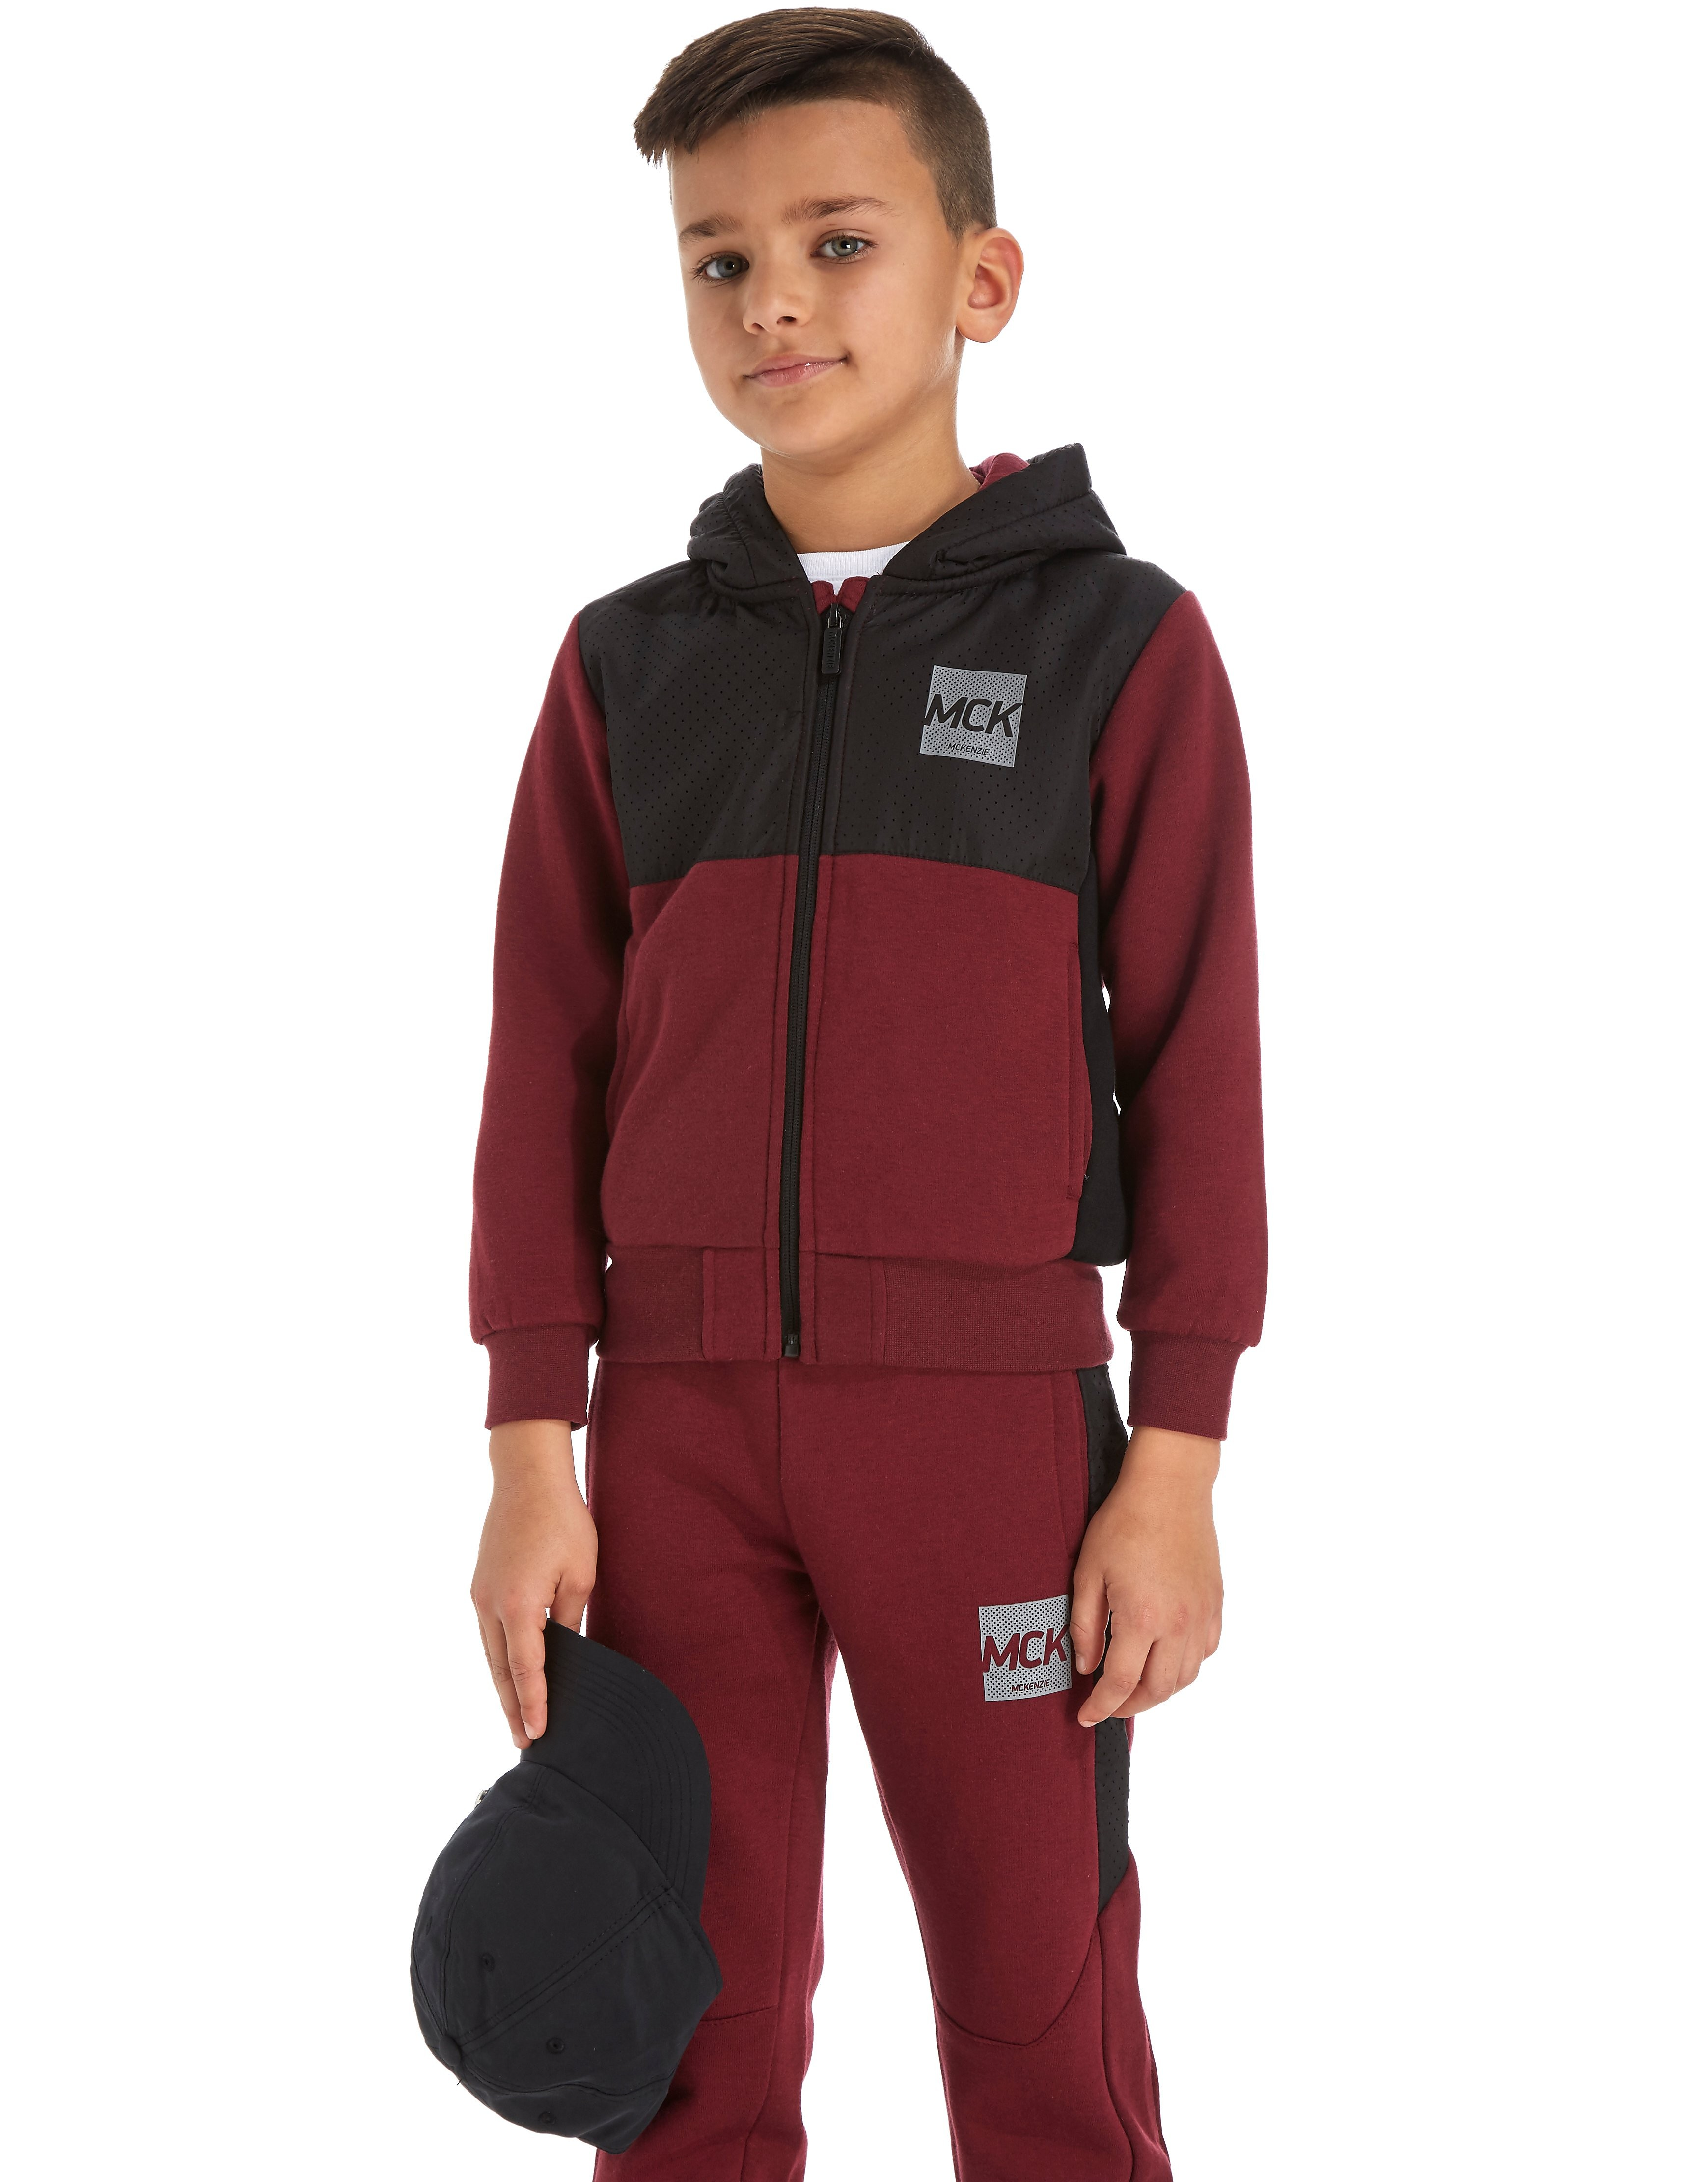 McKenzie Mini Wally Tracksuit Children